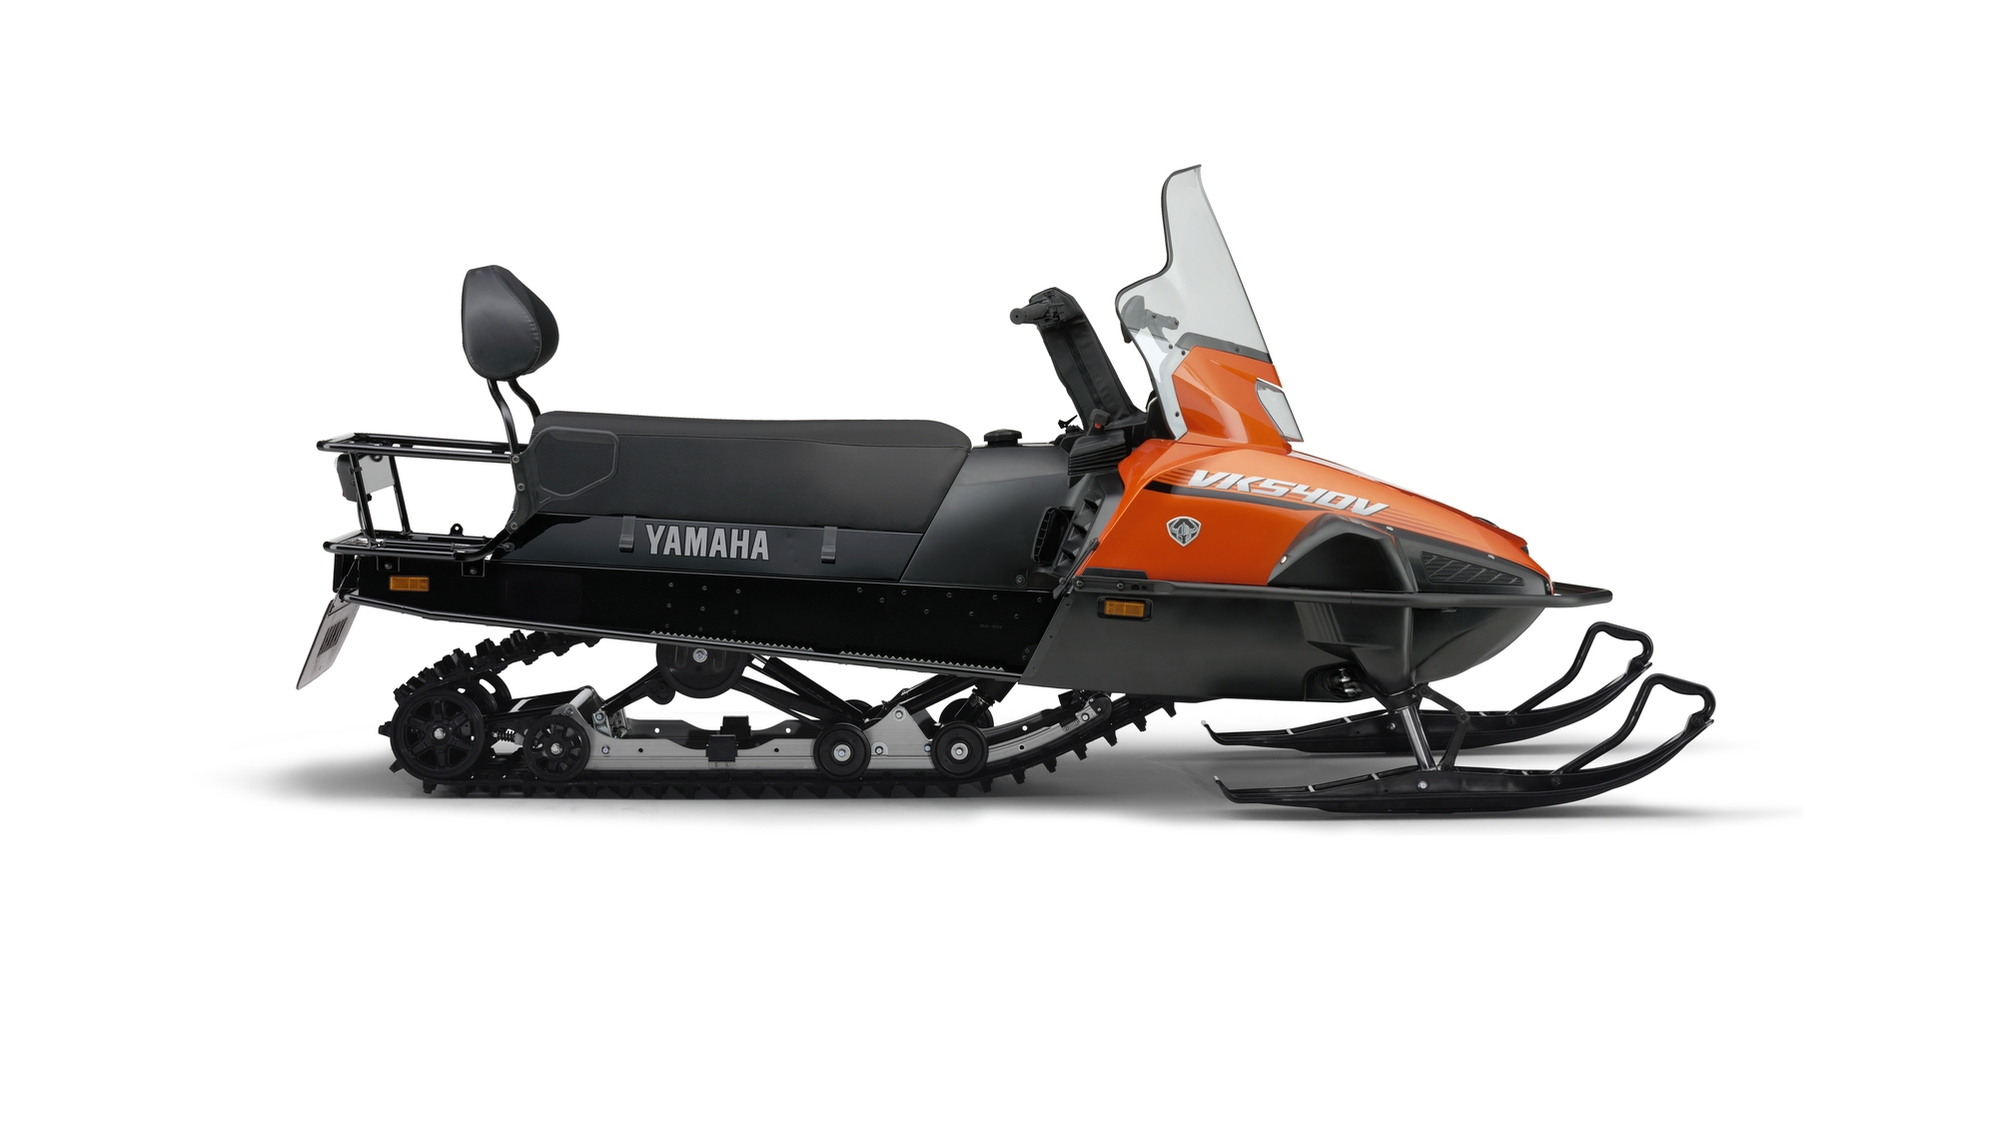 2017-Yamaha-VK540-V-EU-Orange-Blaze-Studio-002.jpg